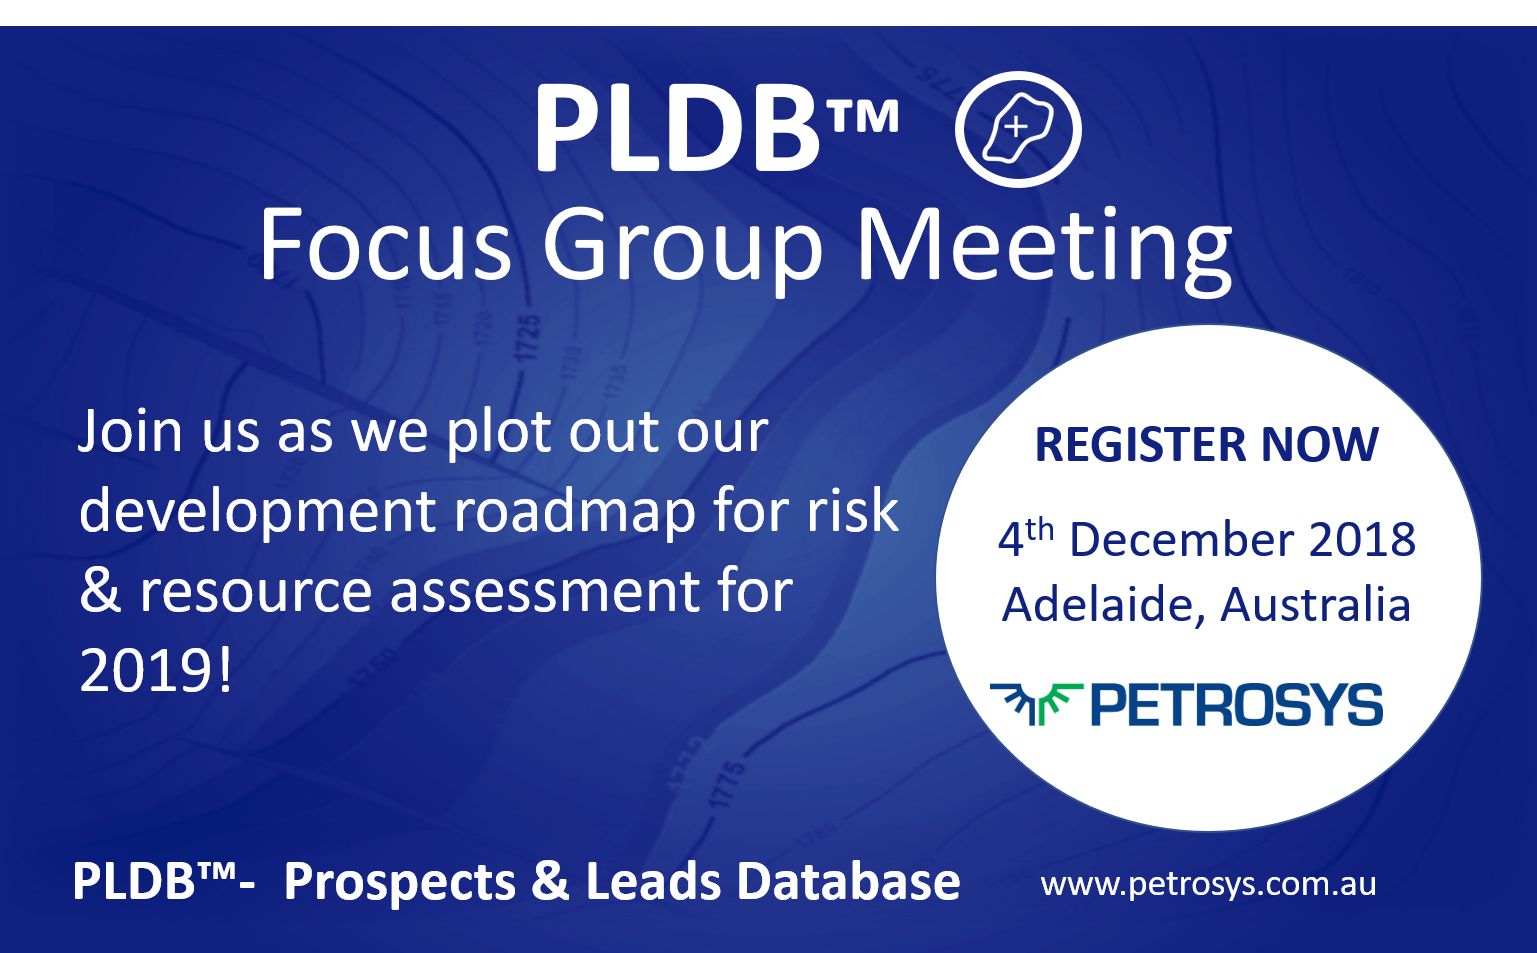 PLDB Focus Group Meeting